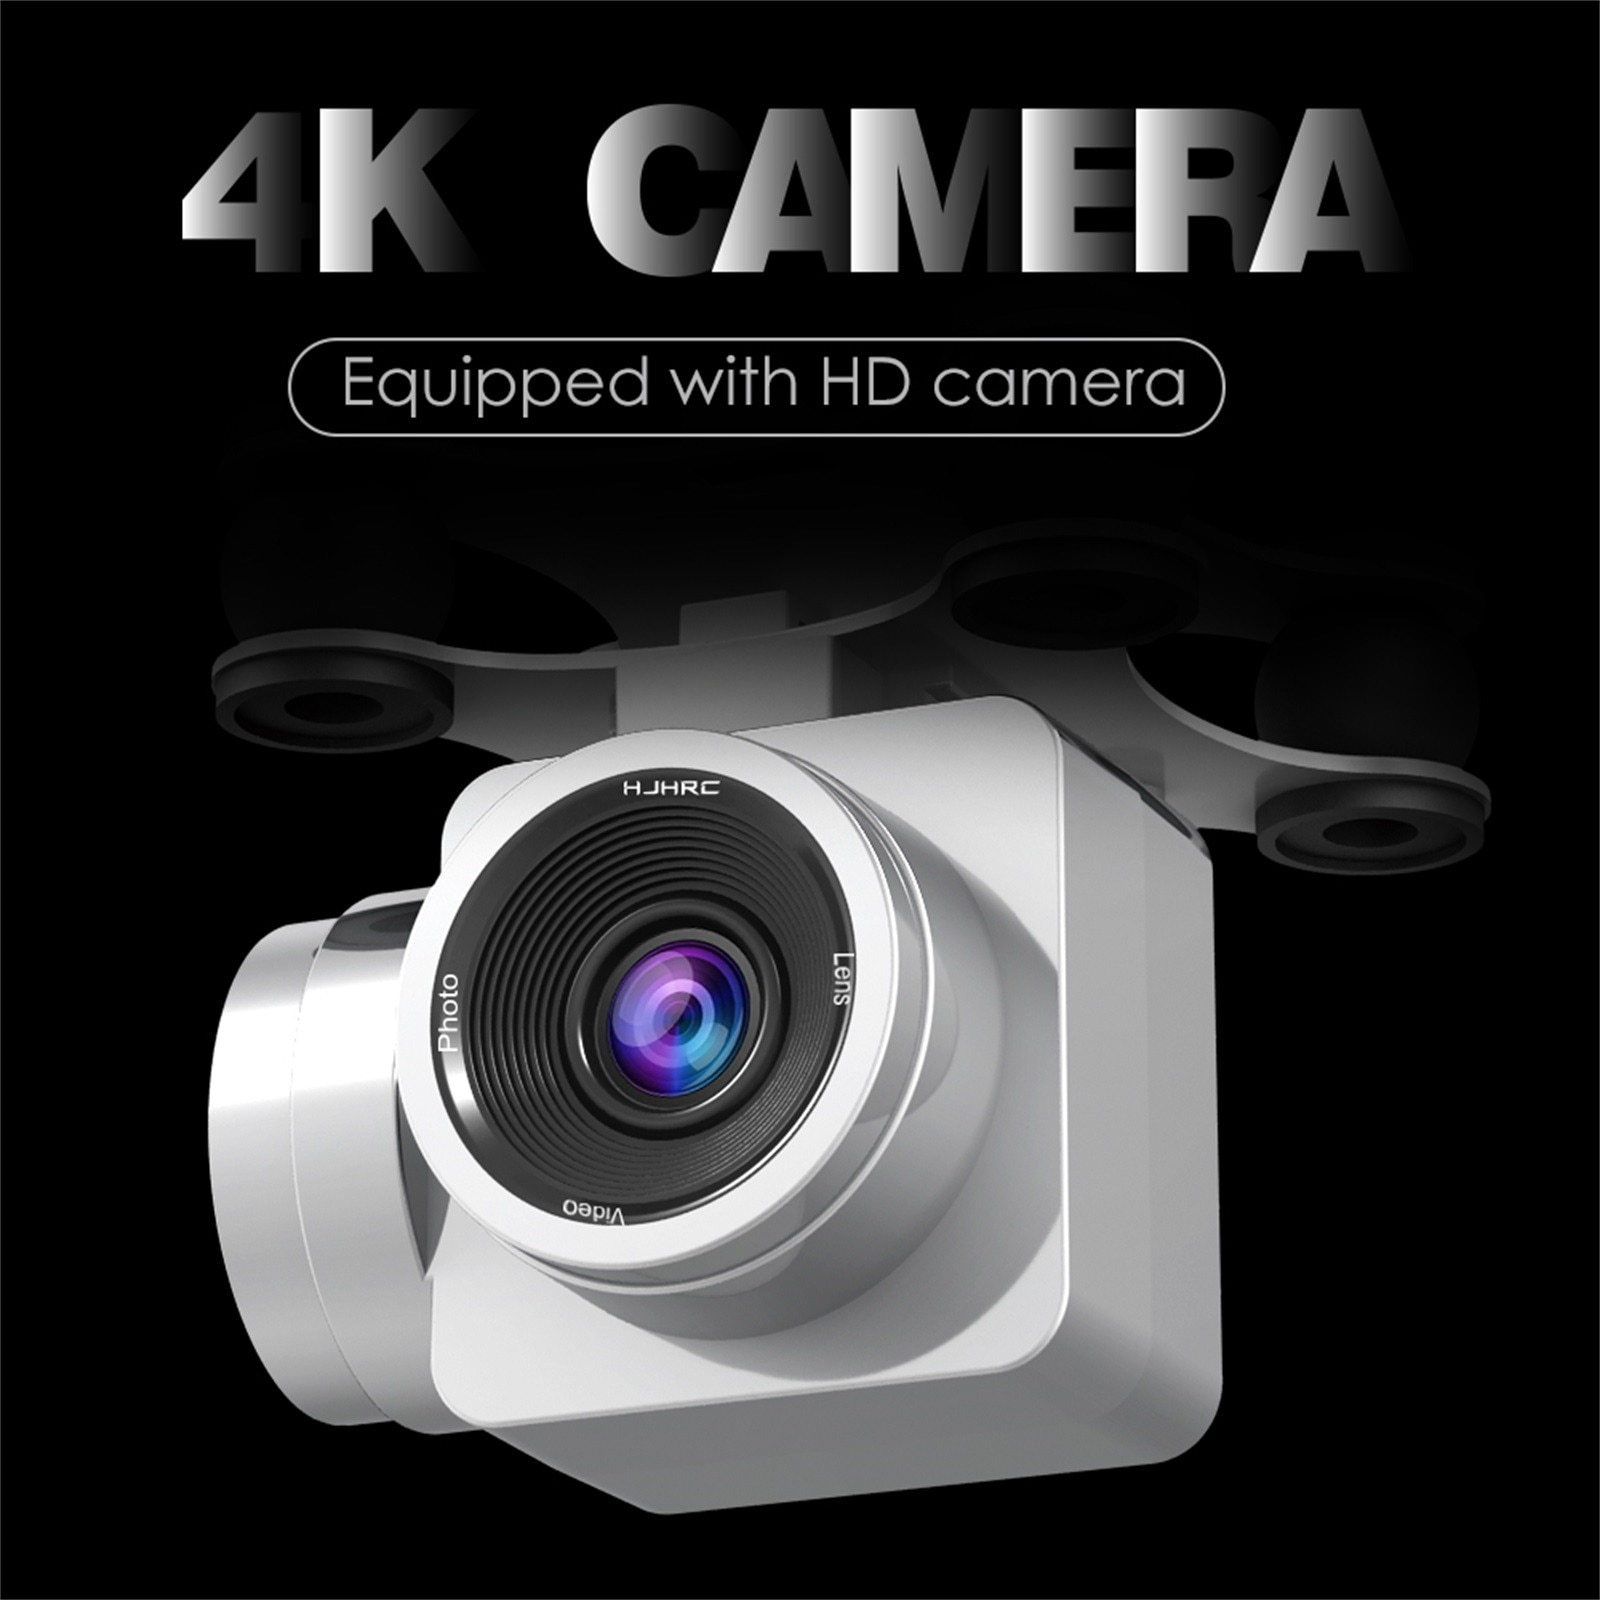 H8b1c4a72ddeb423782b5f2a5e0c33ad7A - Hjhrc Four-axis Aerial Photography Aircraft Drone With Camera Hd 4k Wifi Fpv Foldable Drone Height Holding Headless Quadcopter